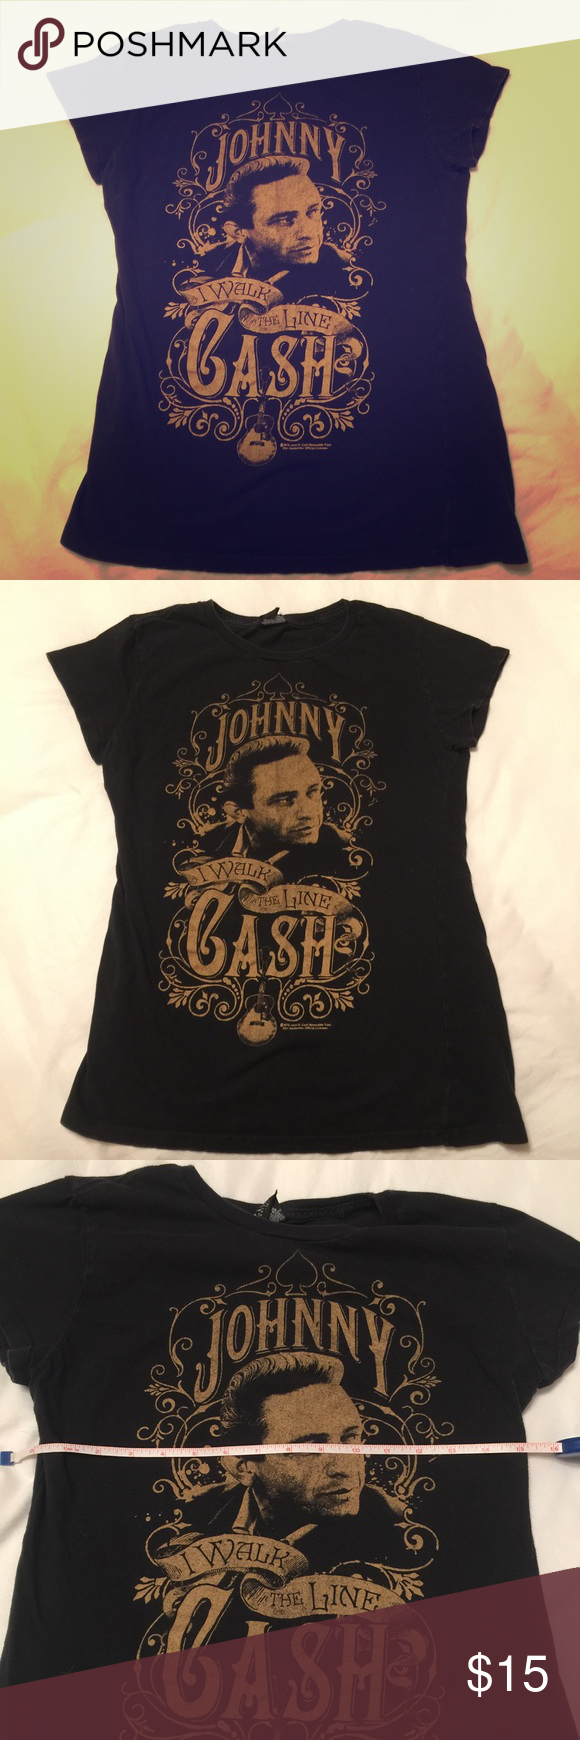 "🎸 Johnny Cash Women's T-Shirt Nice and broken in tee.  Fits like a medium, but it says 1x on the tag.  Go figure!  I'm calling this a medium.  Fits 36c chest pretty snug.  15"" across chest.  Stretchy tee shirt. Tops Tees - Short Sleeve"